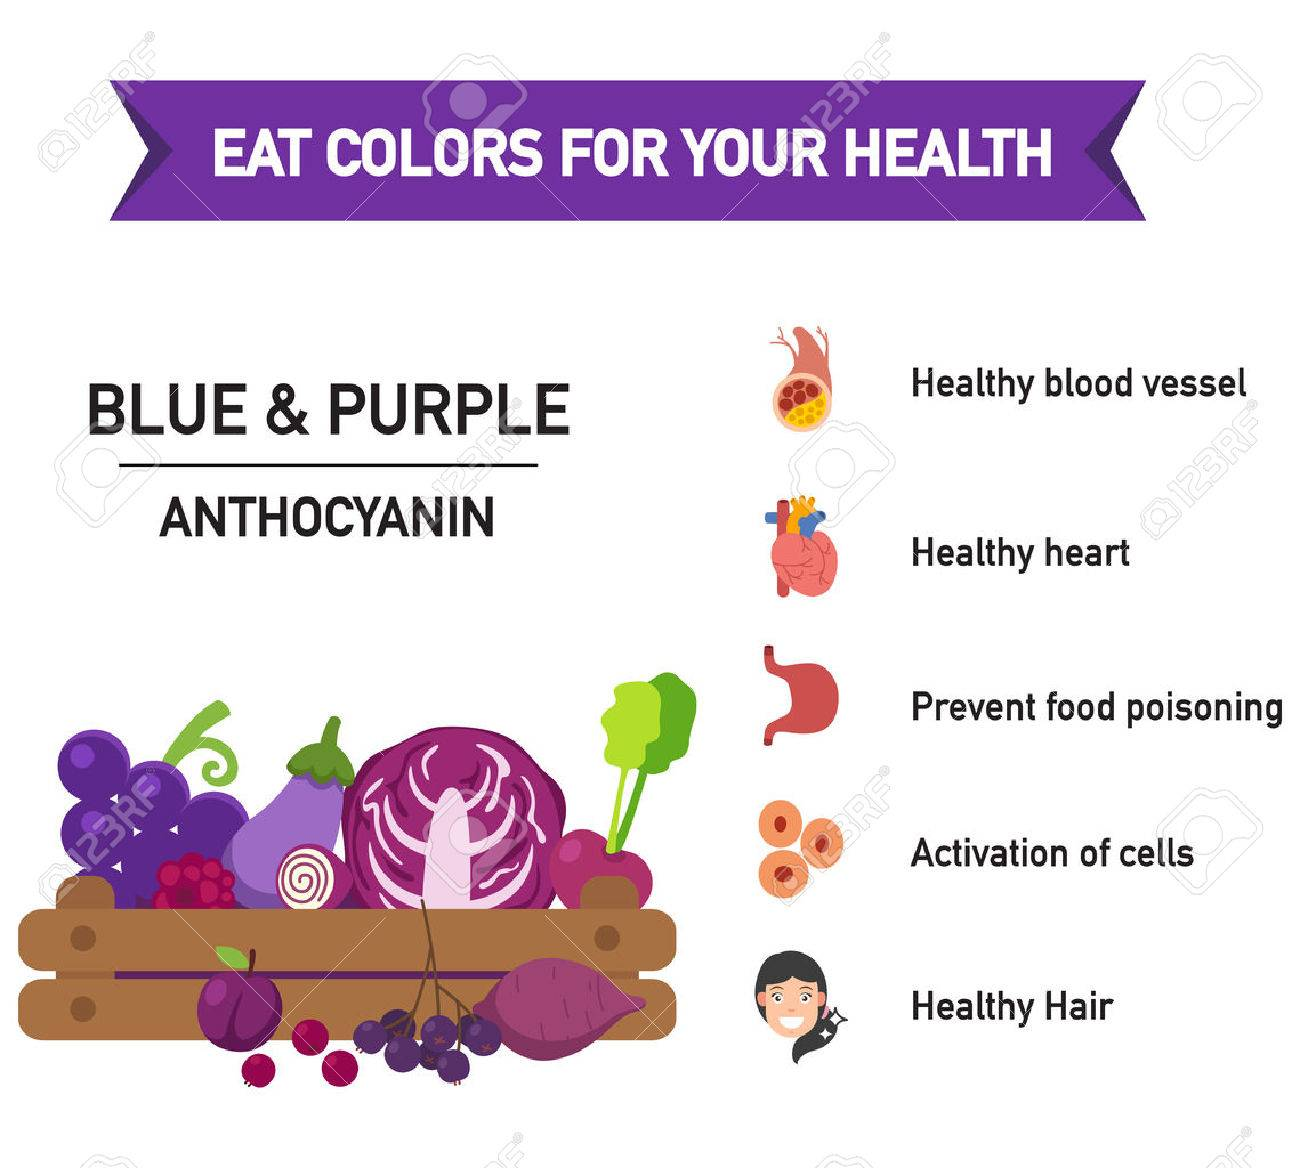 Eat Colors For Your Health BLUE PURPLE FOODEat A Rainbow Of Fruits